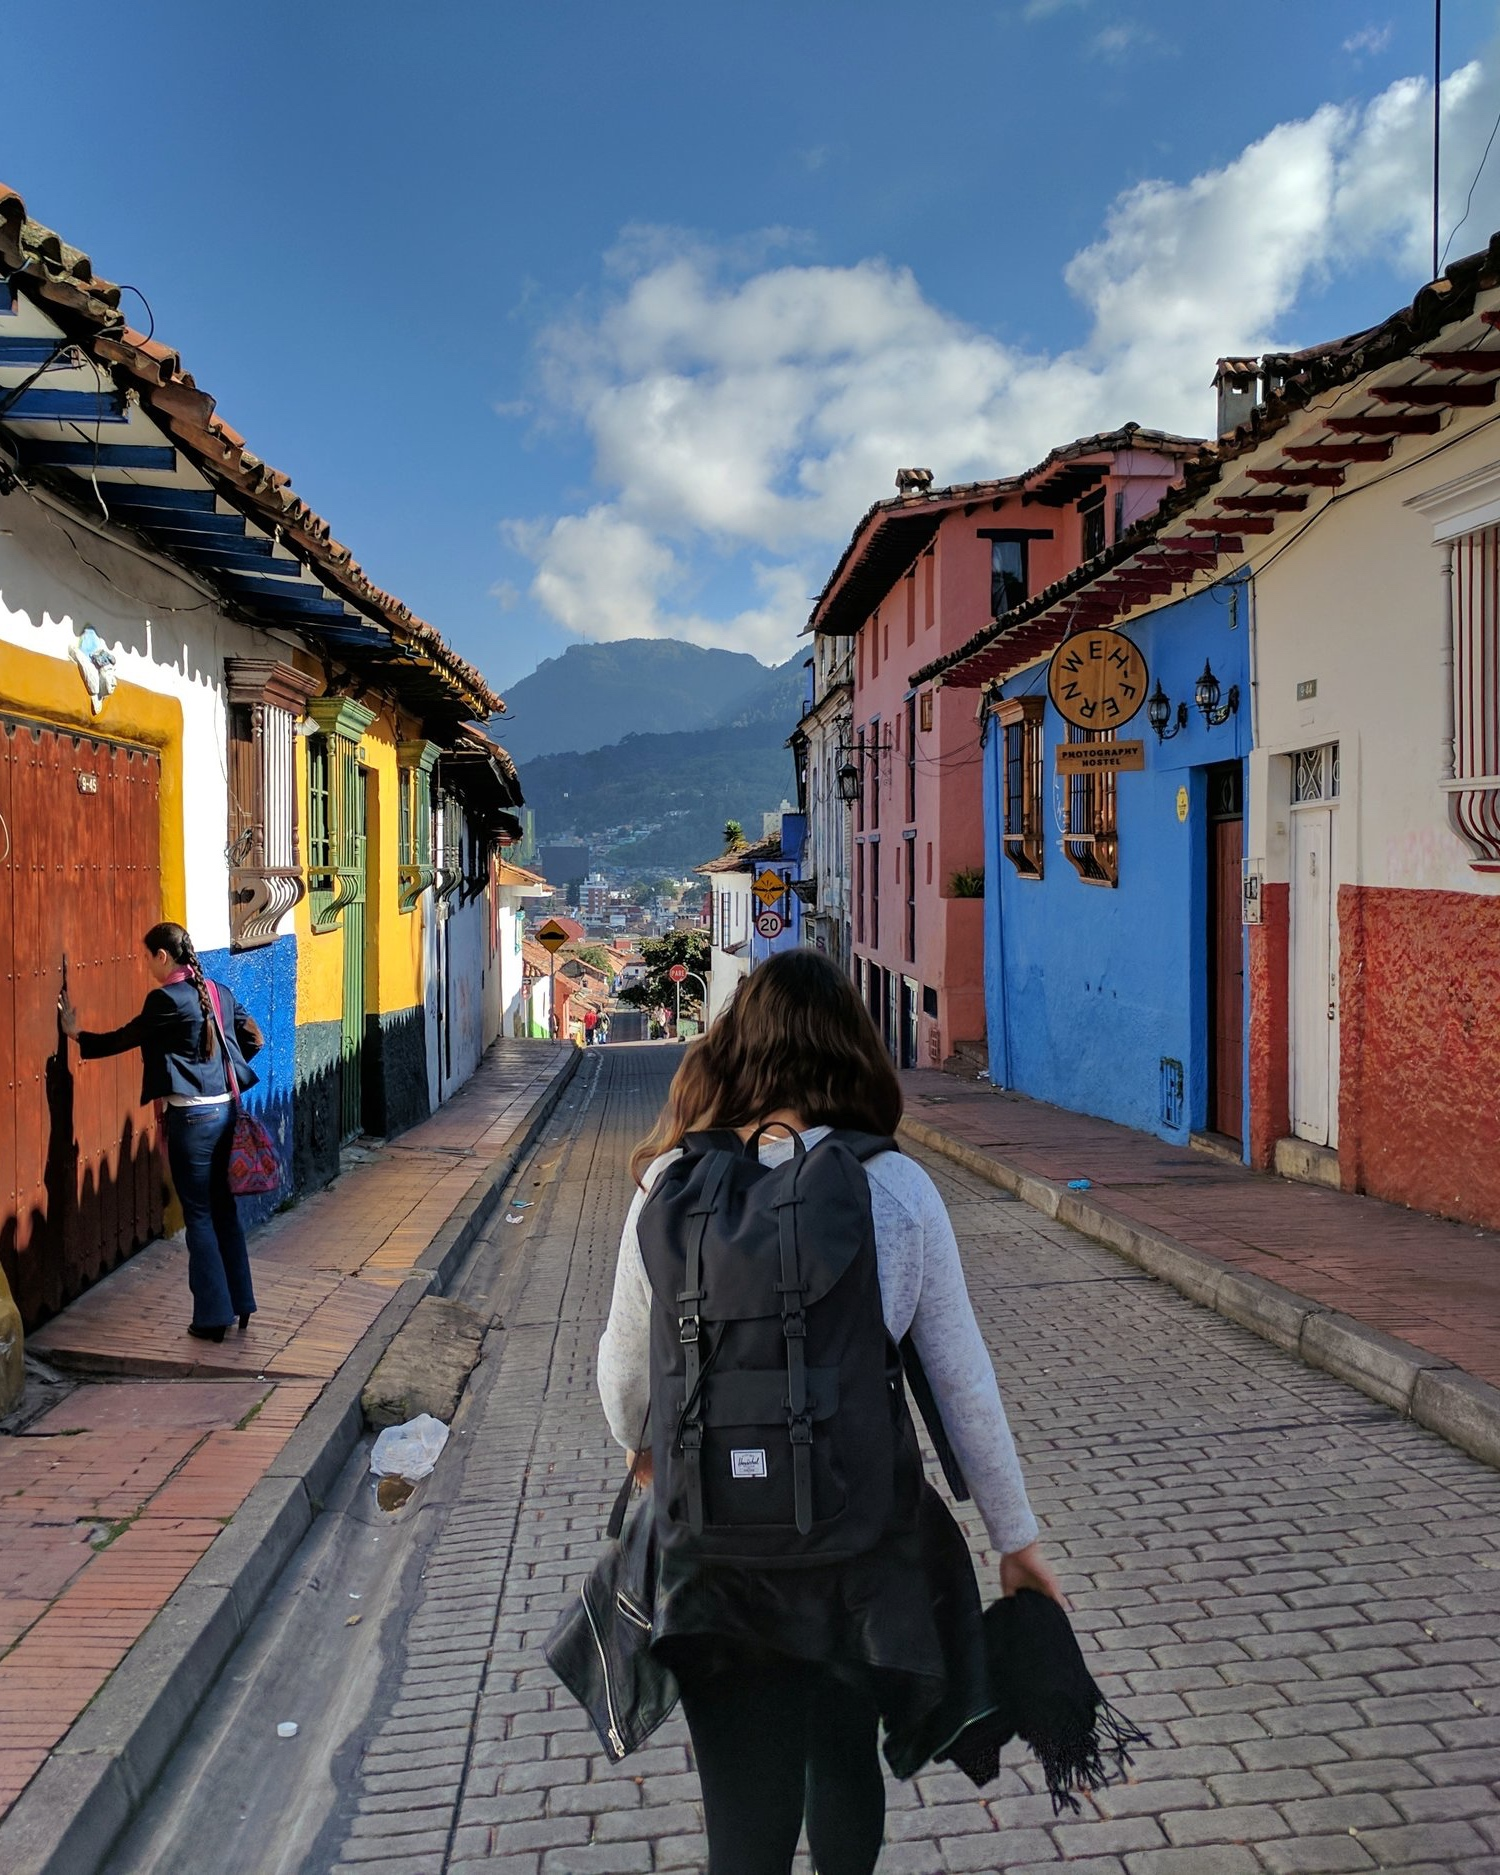 A Colombian Renaissance. - Learn more about how the Blended Capital Approach to Restoring Economic and Cultural Vitality is being applied to peace-building in Colombia.